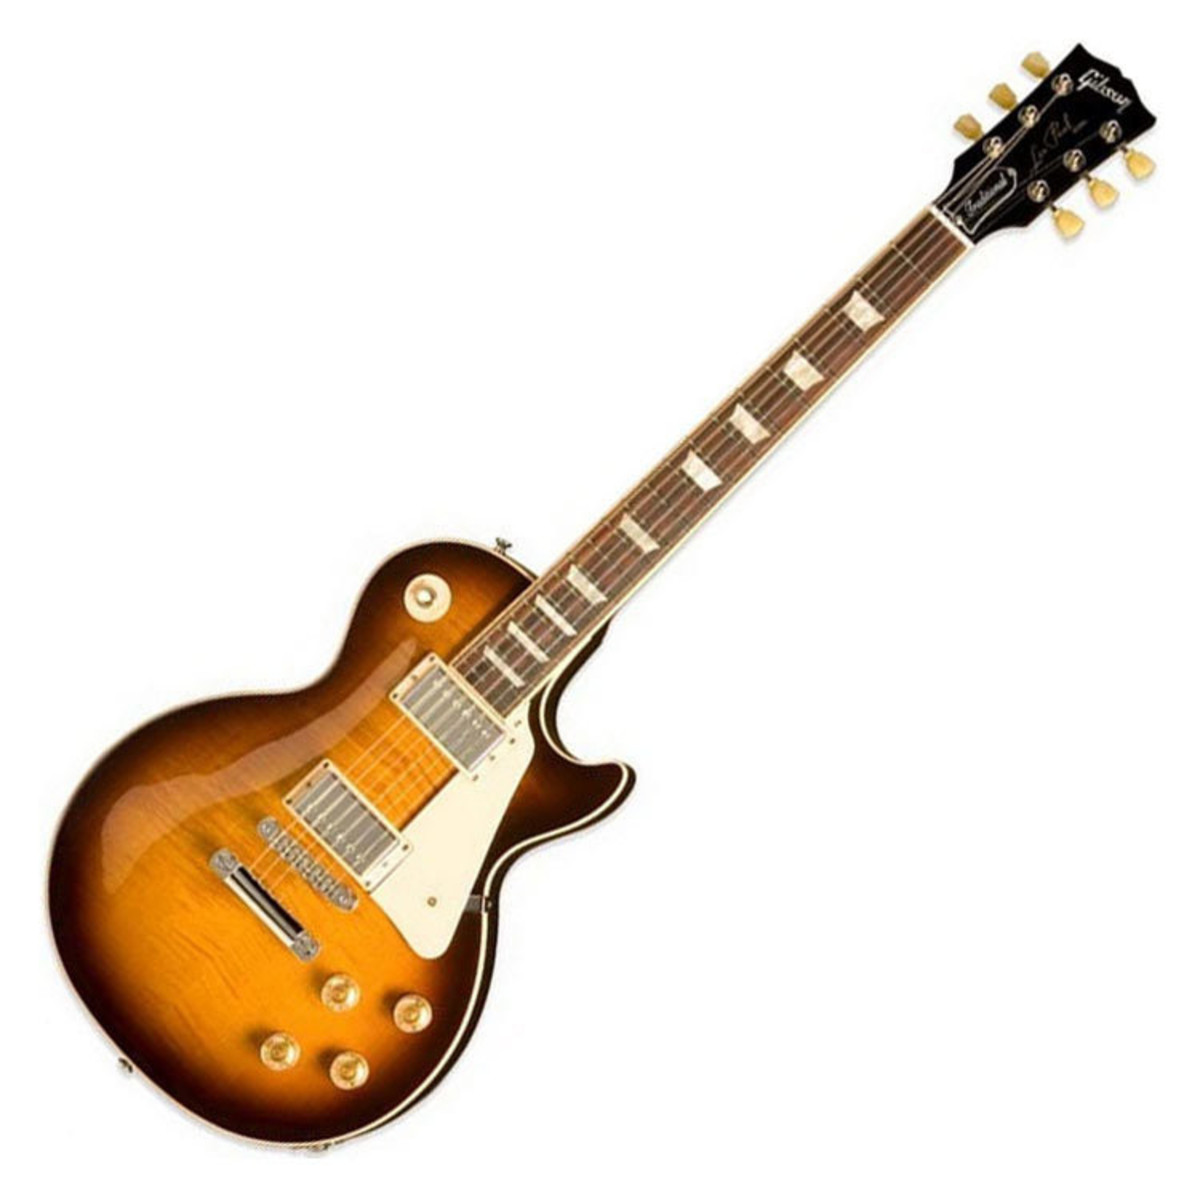 gibson les paul traditional guitar desert burst with free gifts at gear4music. Black Bedroom Furniture Sets. Home Design Ideas